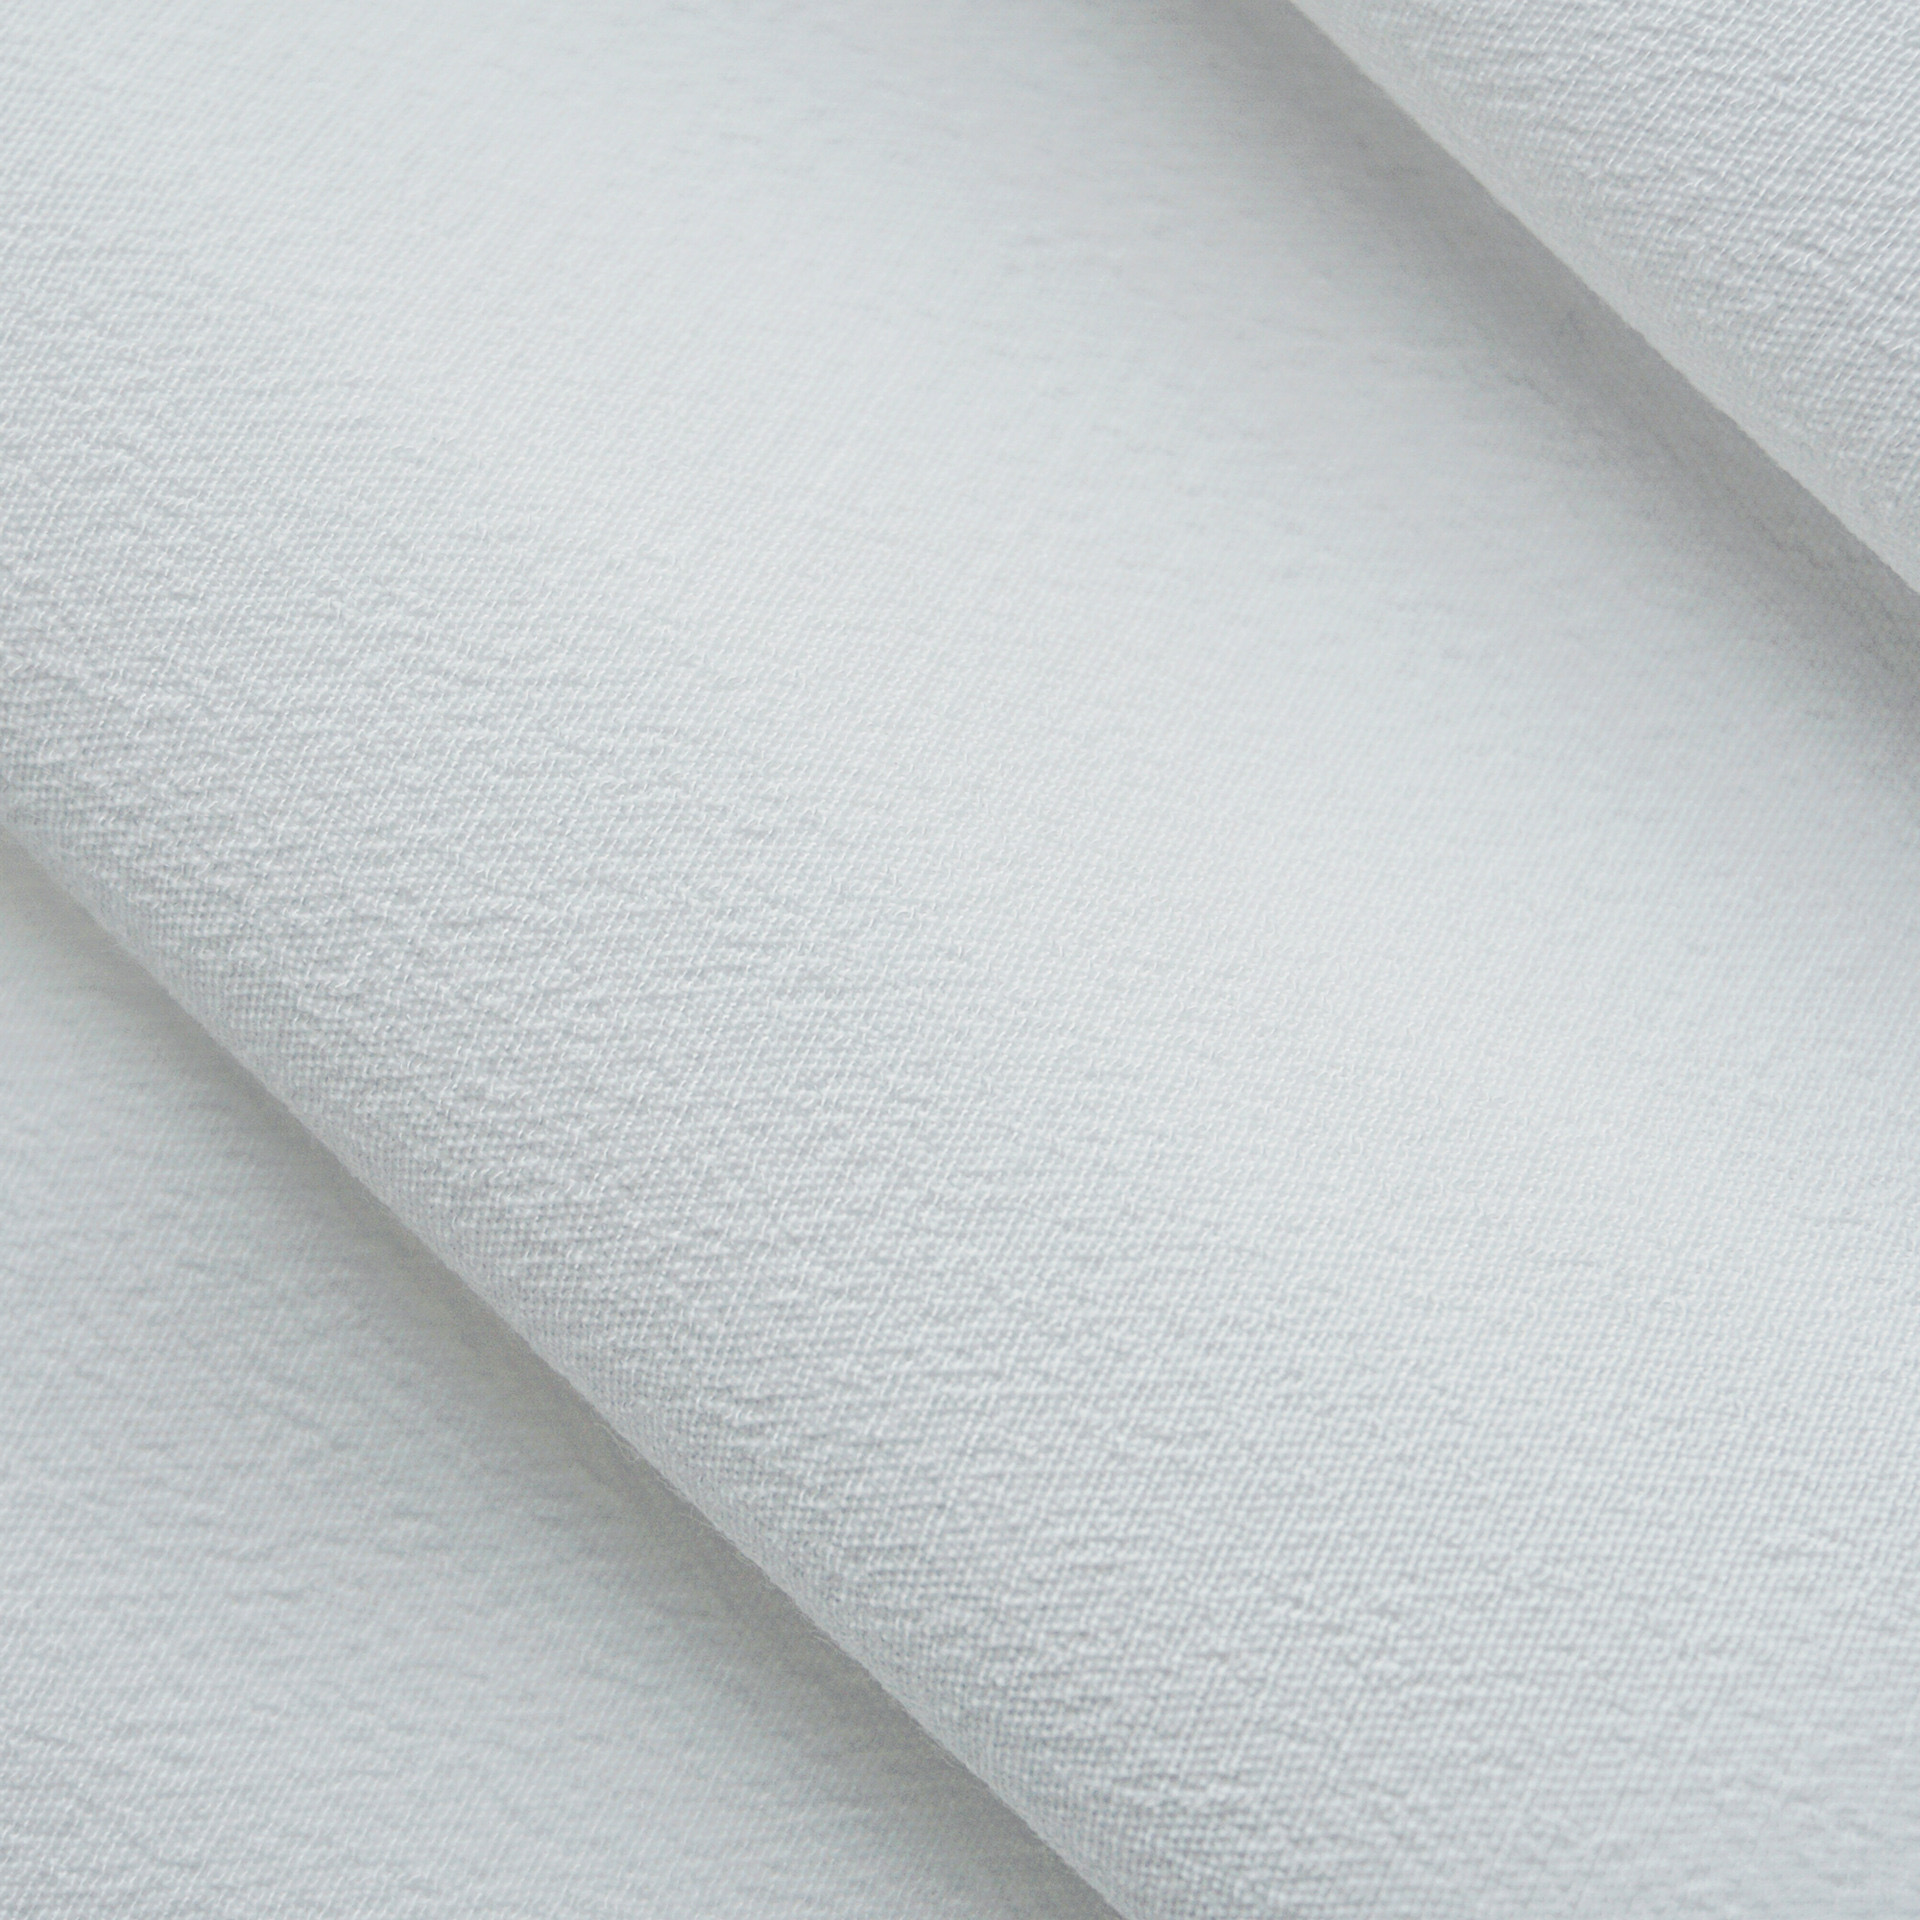 High-quality white 100 rayon viscose crepe fabric for clothing fabrics